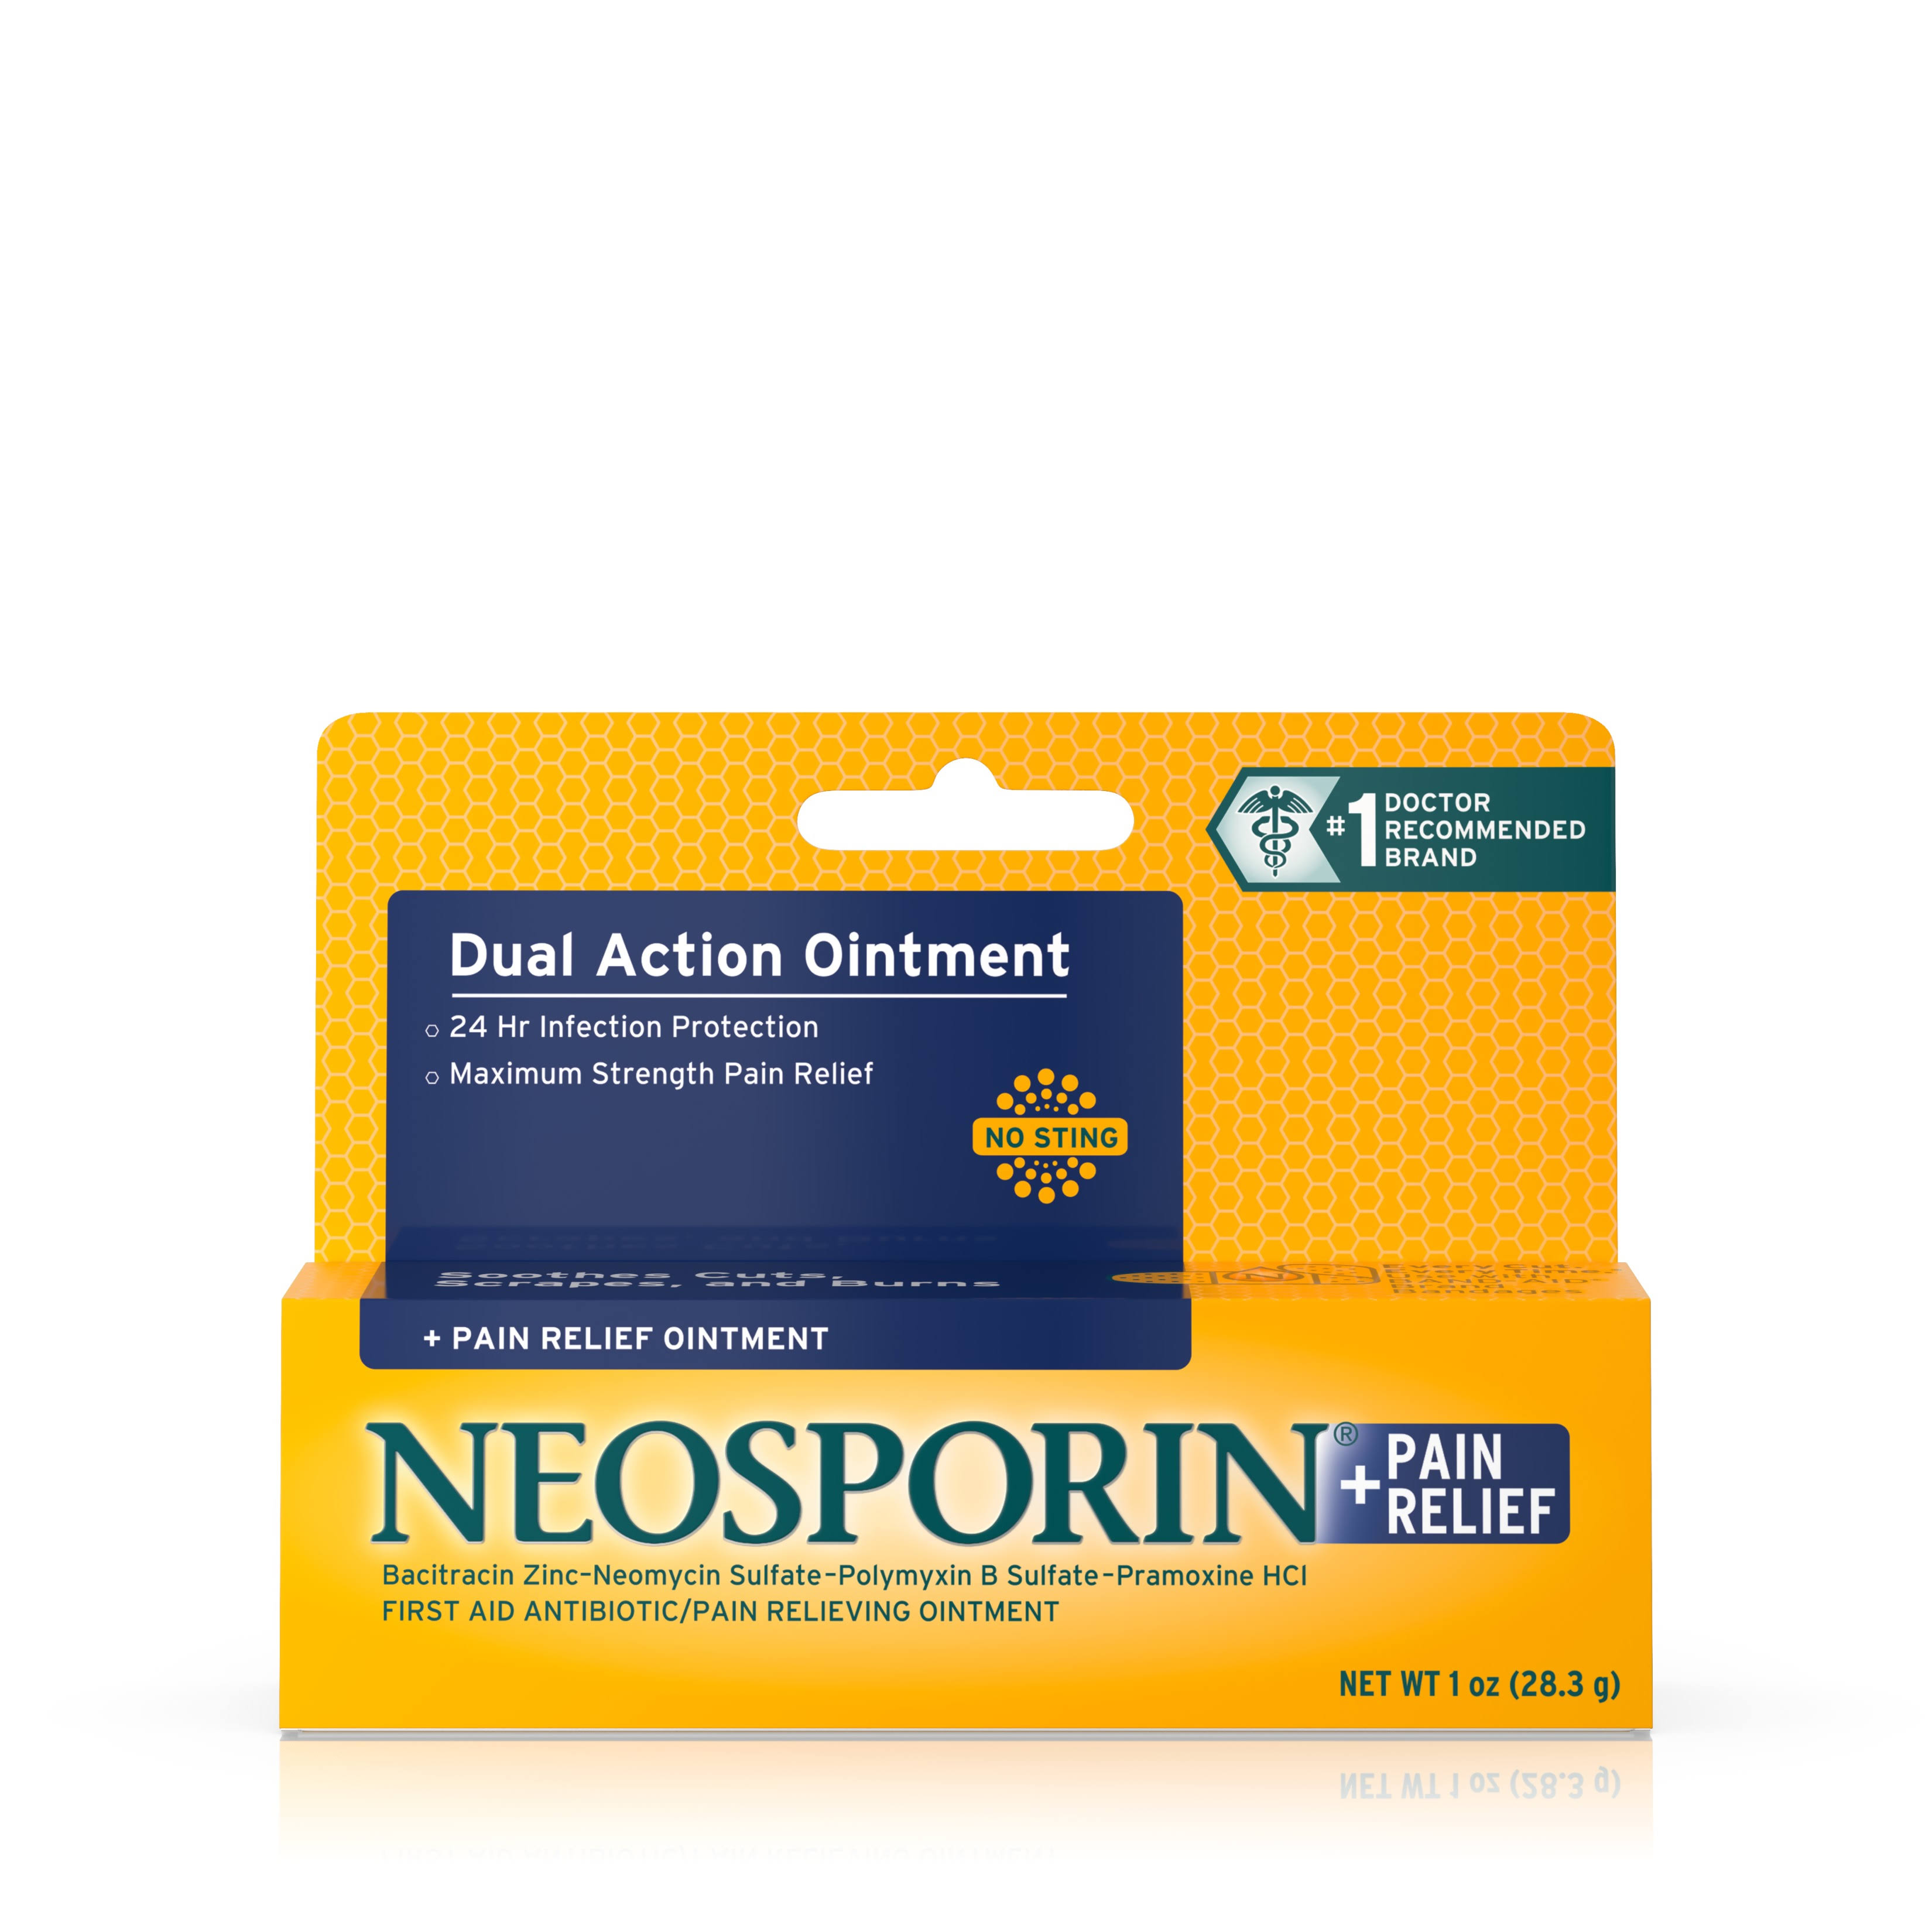 Neosporin Plus Pain Relief Ointment